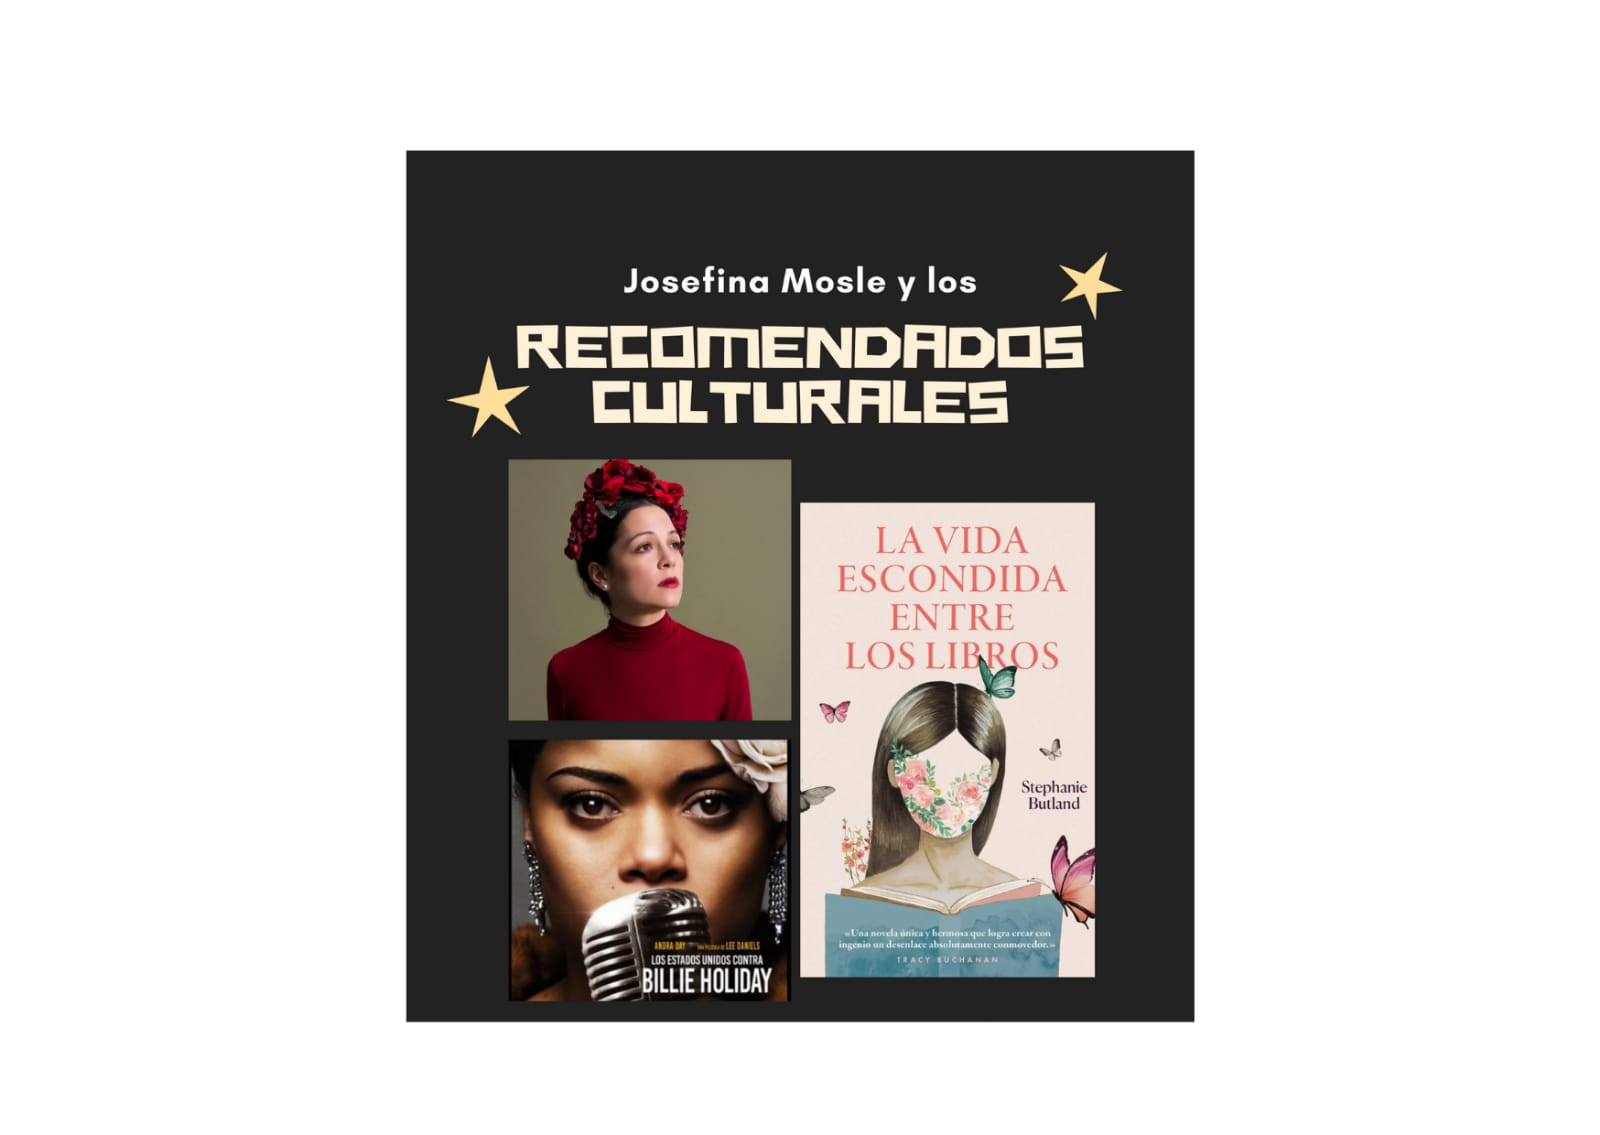 If you are looking for something that you can see, read and hear, Josefina Mosley gives you the recommended ones